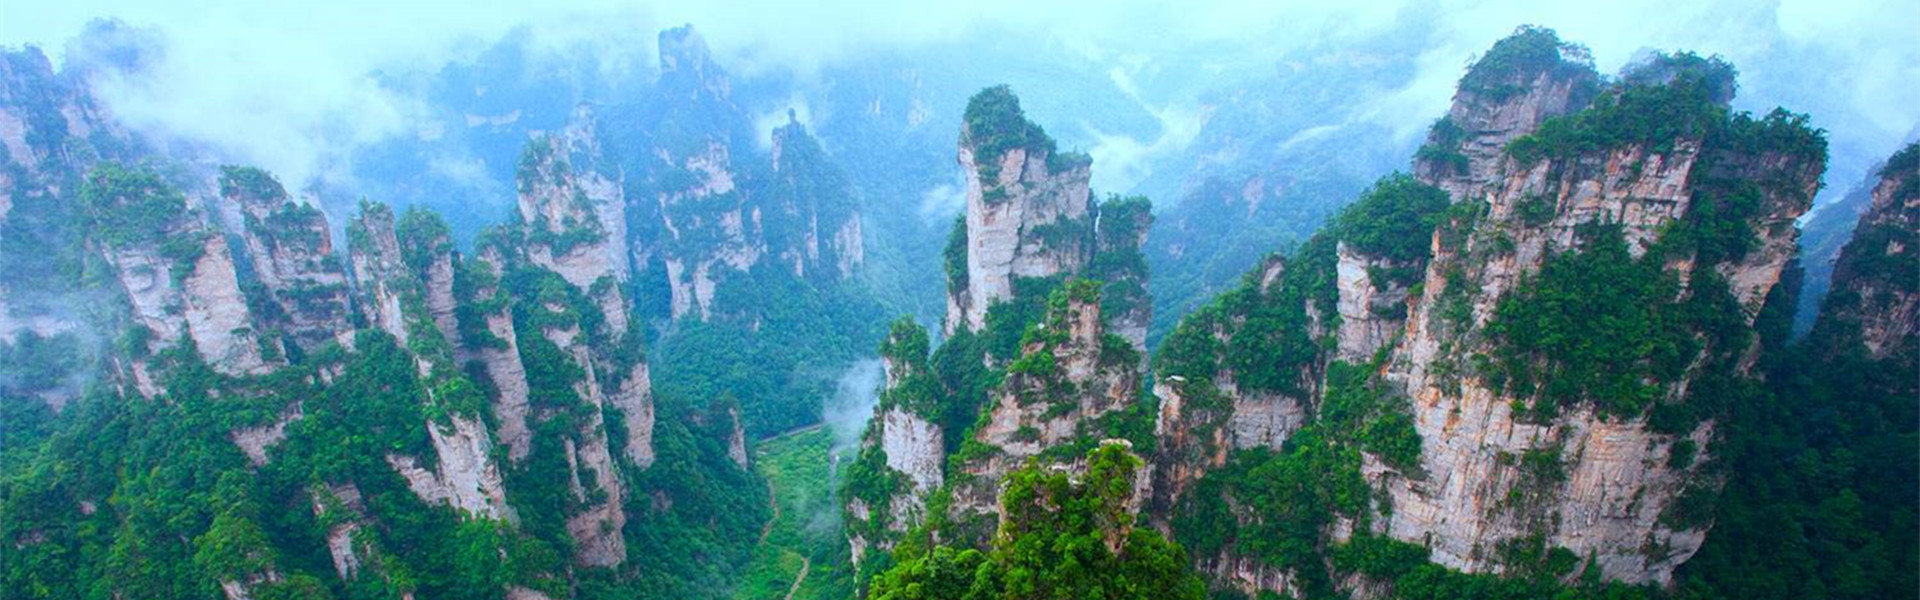 Zhangjiajie Tour By Cities